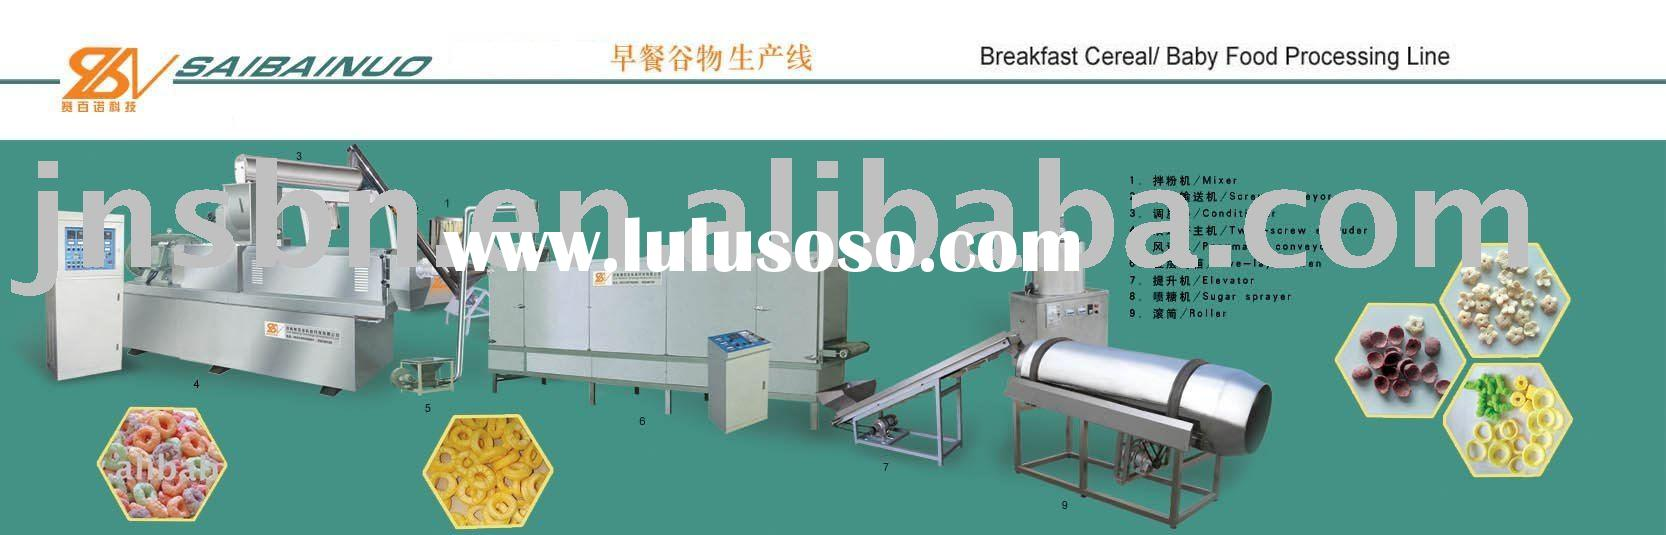 breakfast cereal processing line/baby food processing line,corn flakes processing line